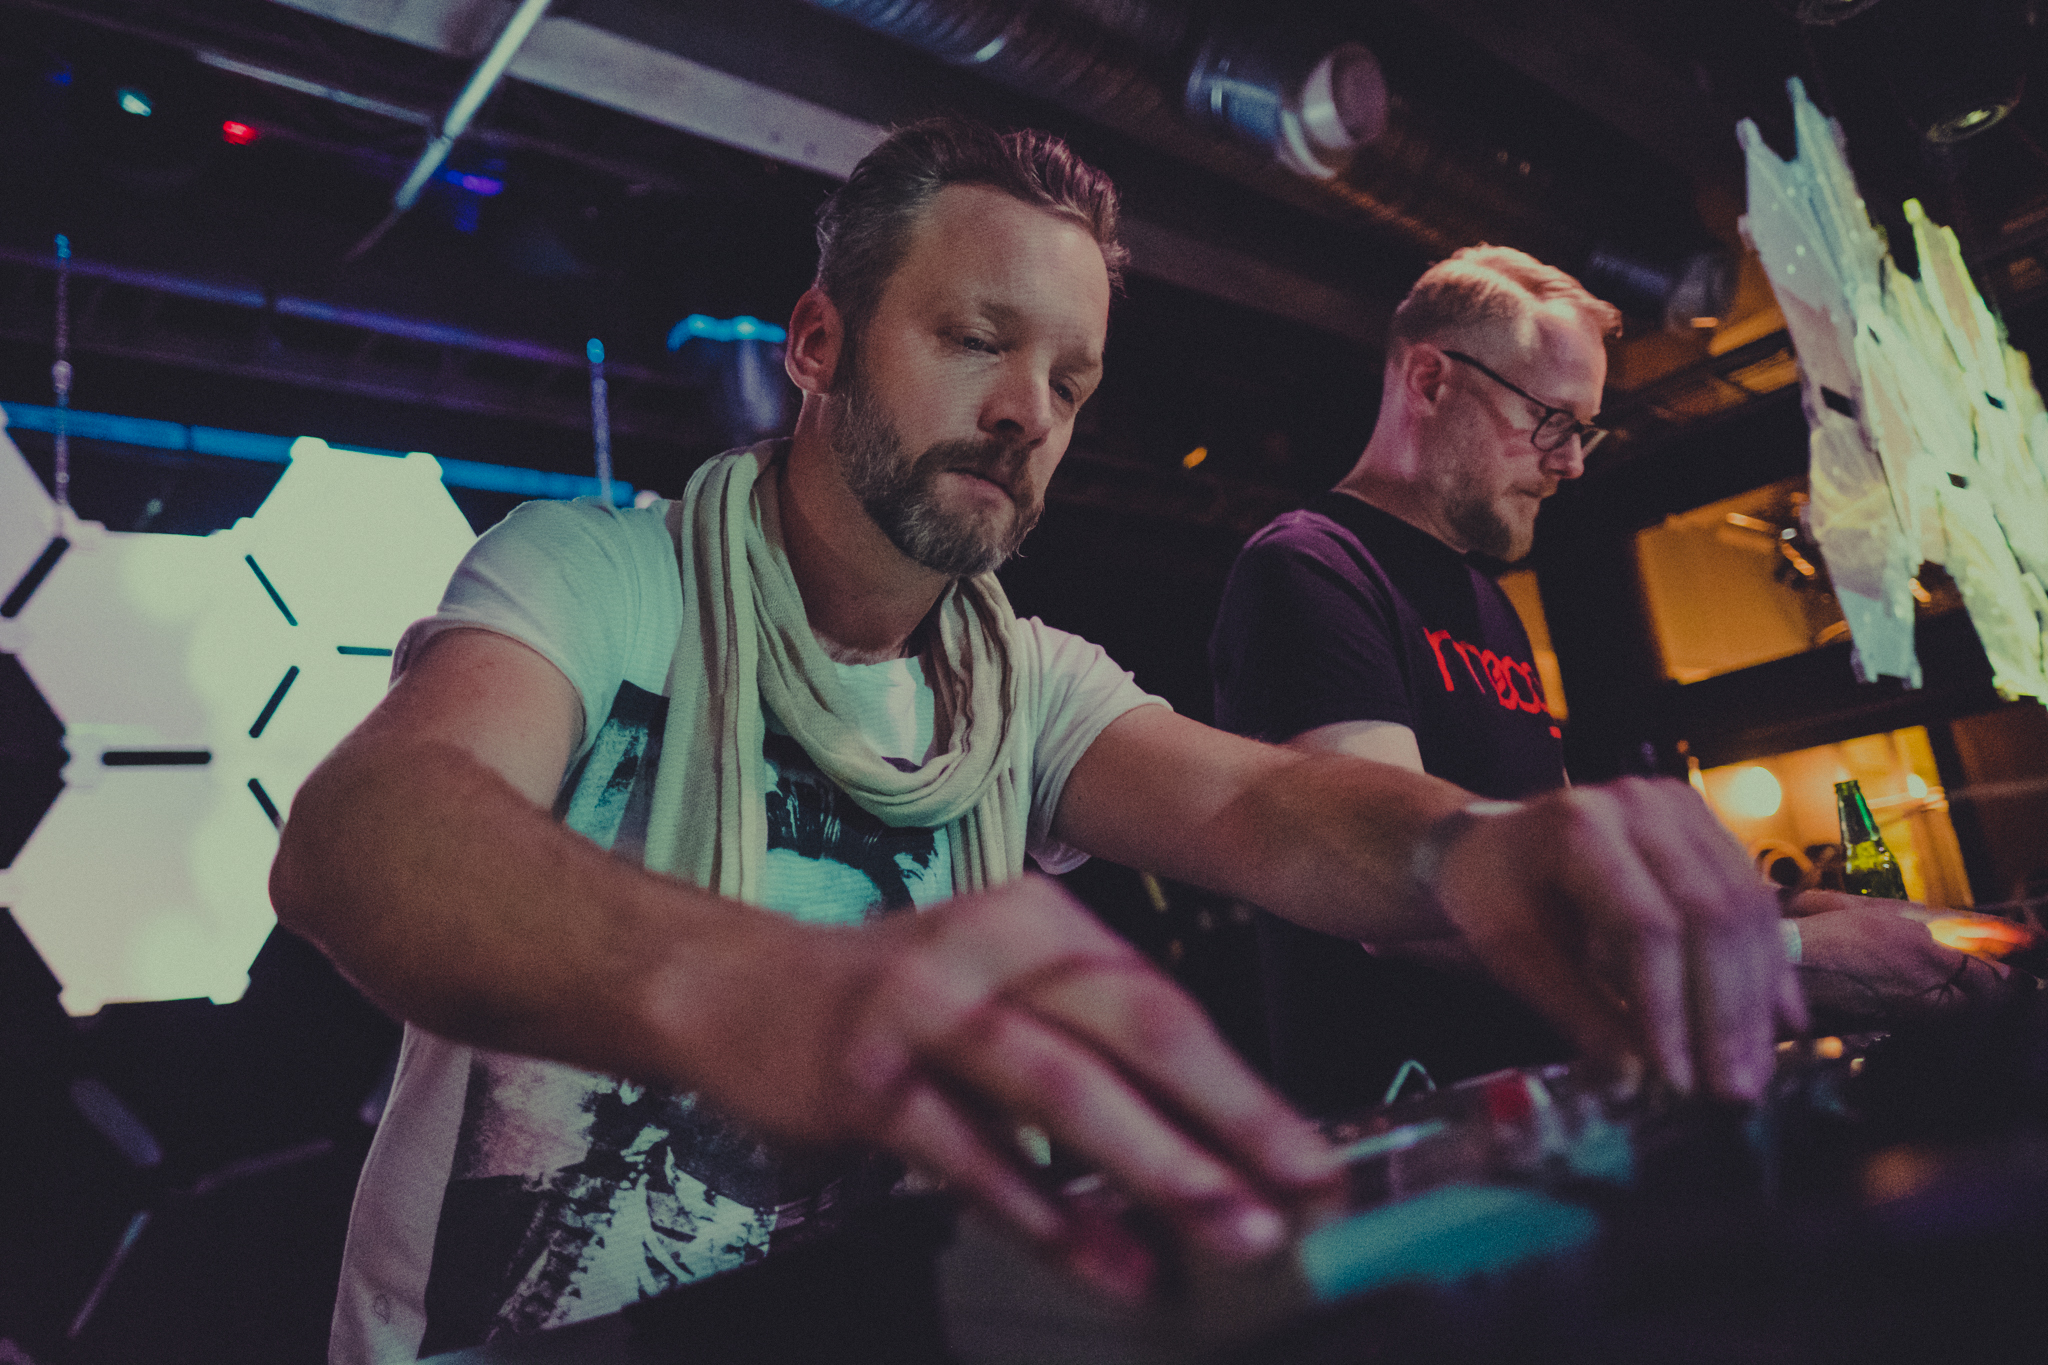 """Credit:   Pierre Ekman    """" Play around with your tools as much as you can, it's really essential to know them, otherwise you'll just be struggling with stupid things in the workflow. Don't be afraid to spend a lot of time getting to know your craft ."""" - Carbon Based Lifeforms"""